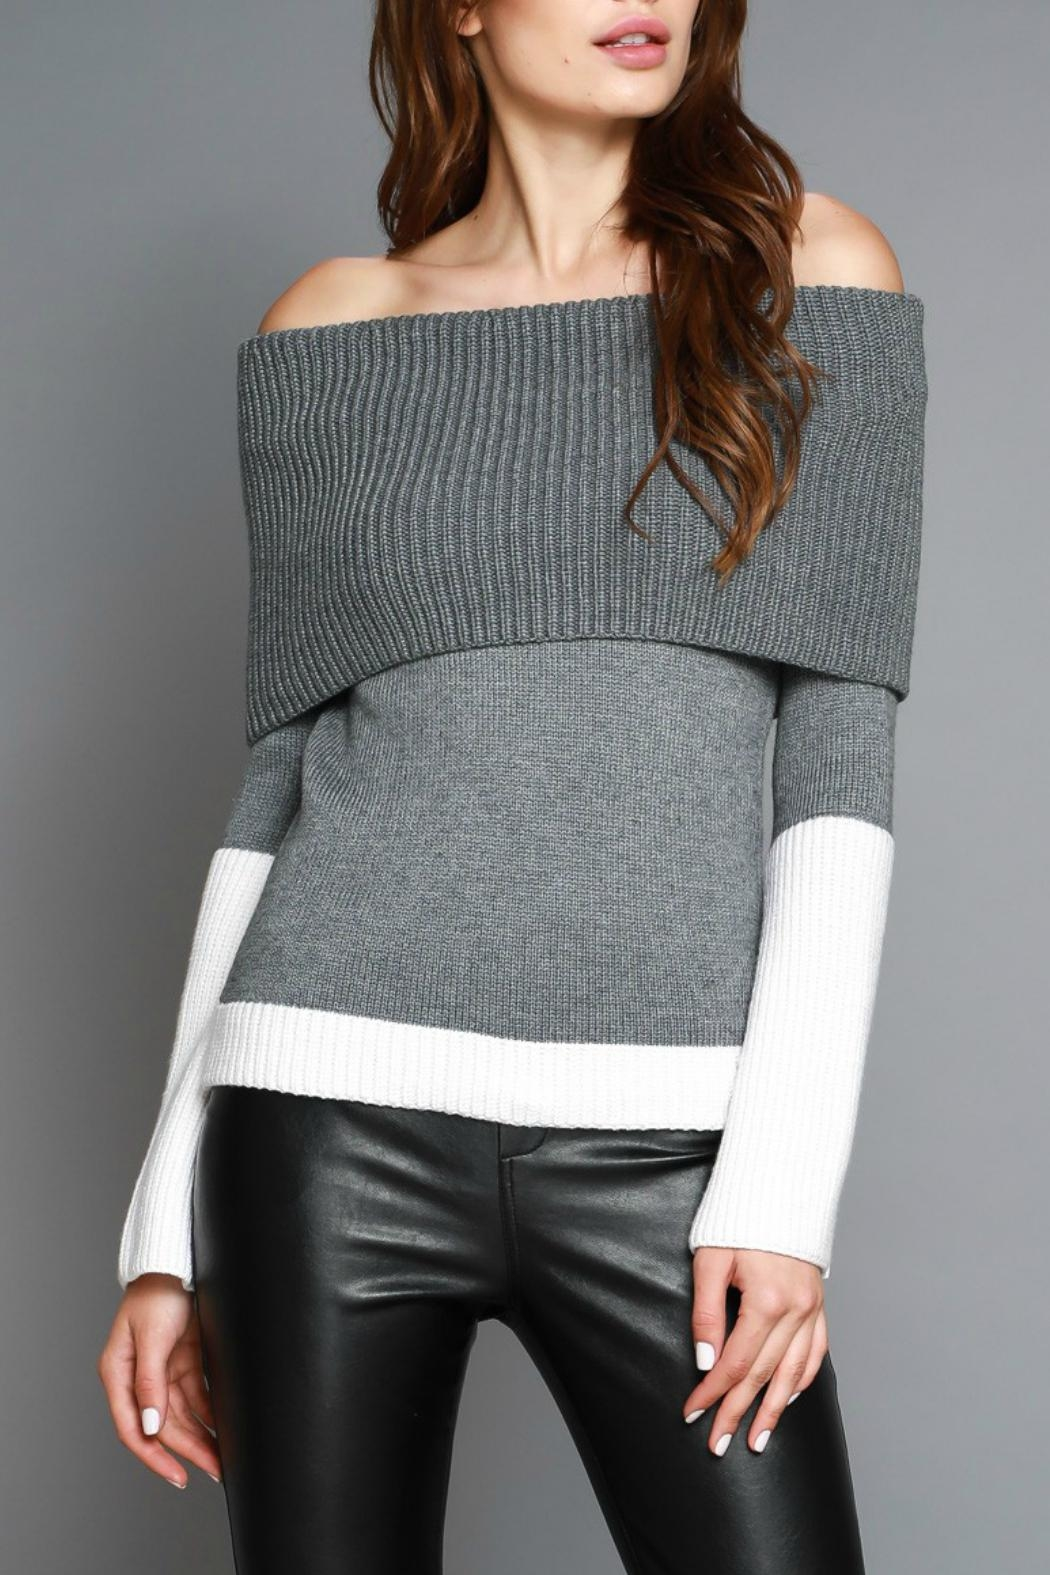 Do & Be Colorblocked Off Shoulder Sweater - Main Image